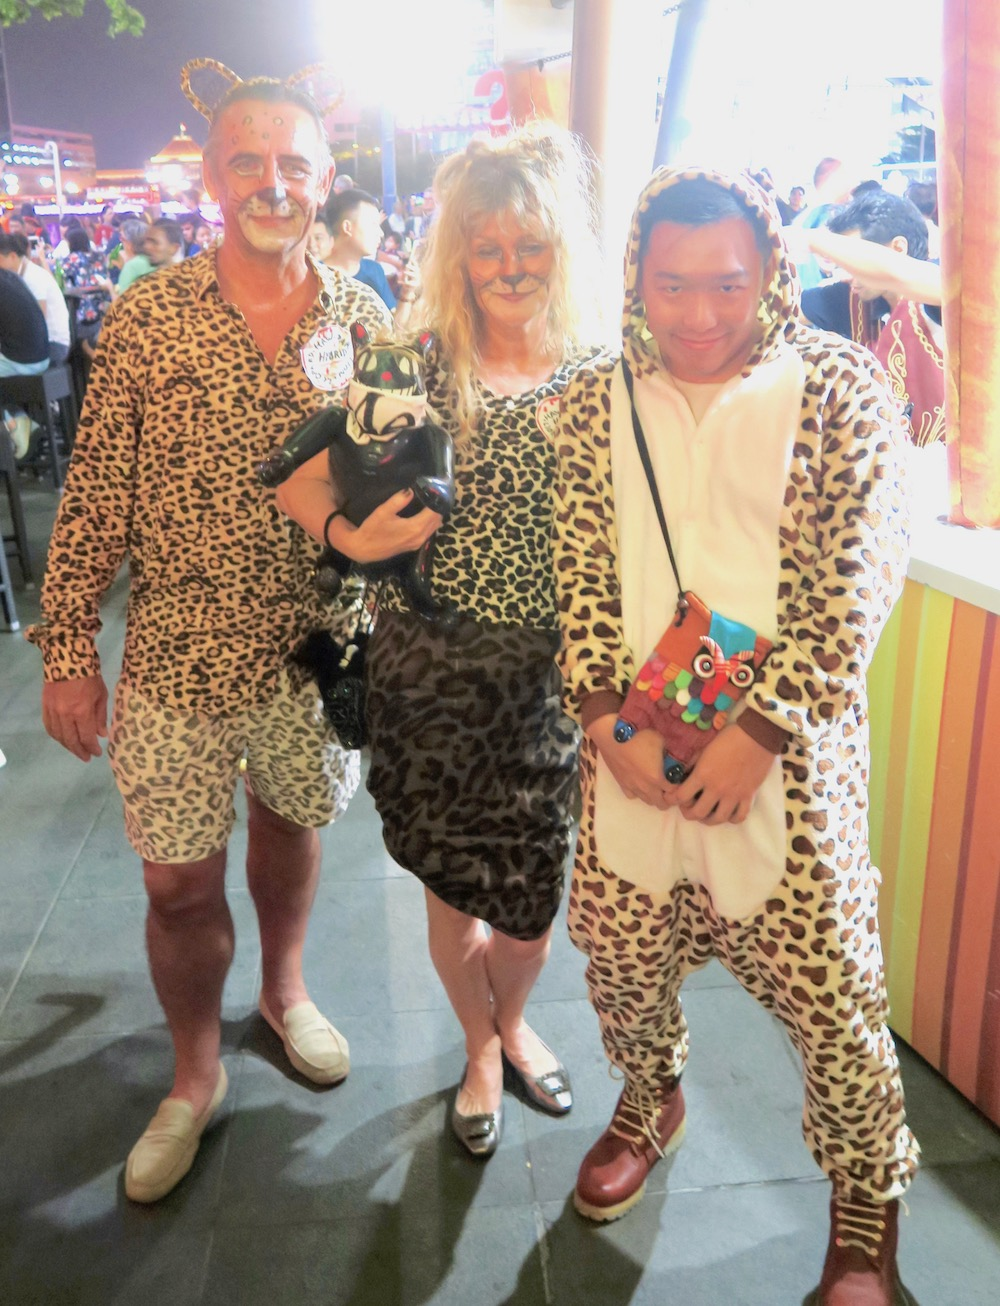 Three big cats at Halloween clarke Quay Singapore |curlytraveller.com